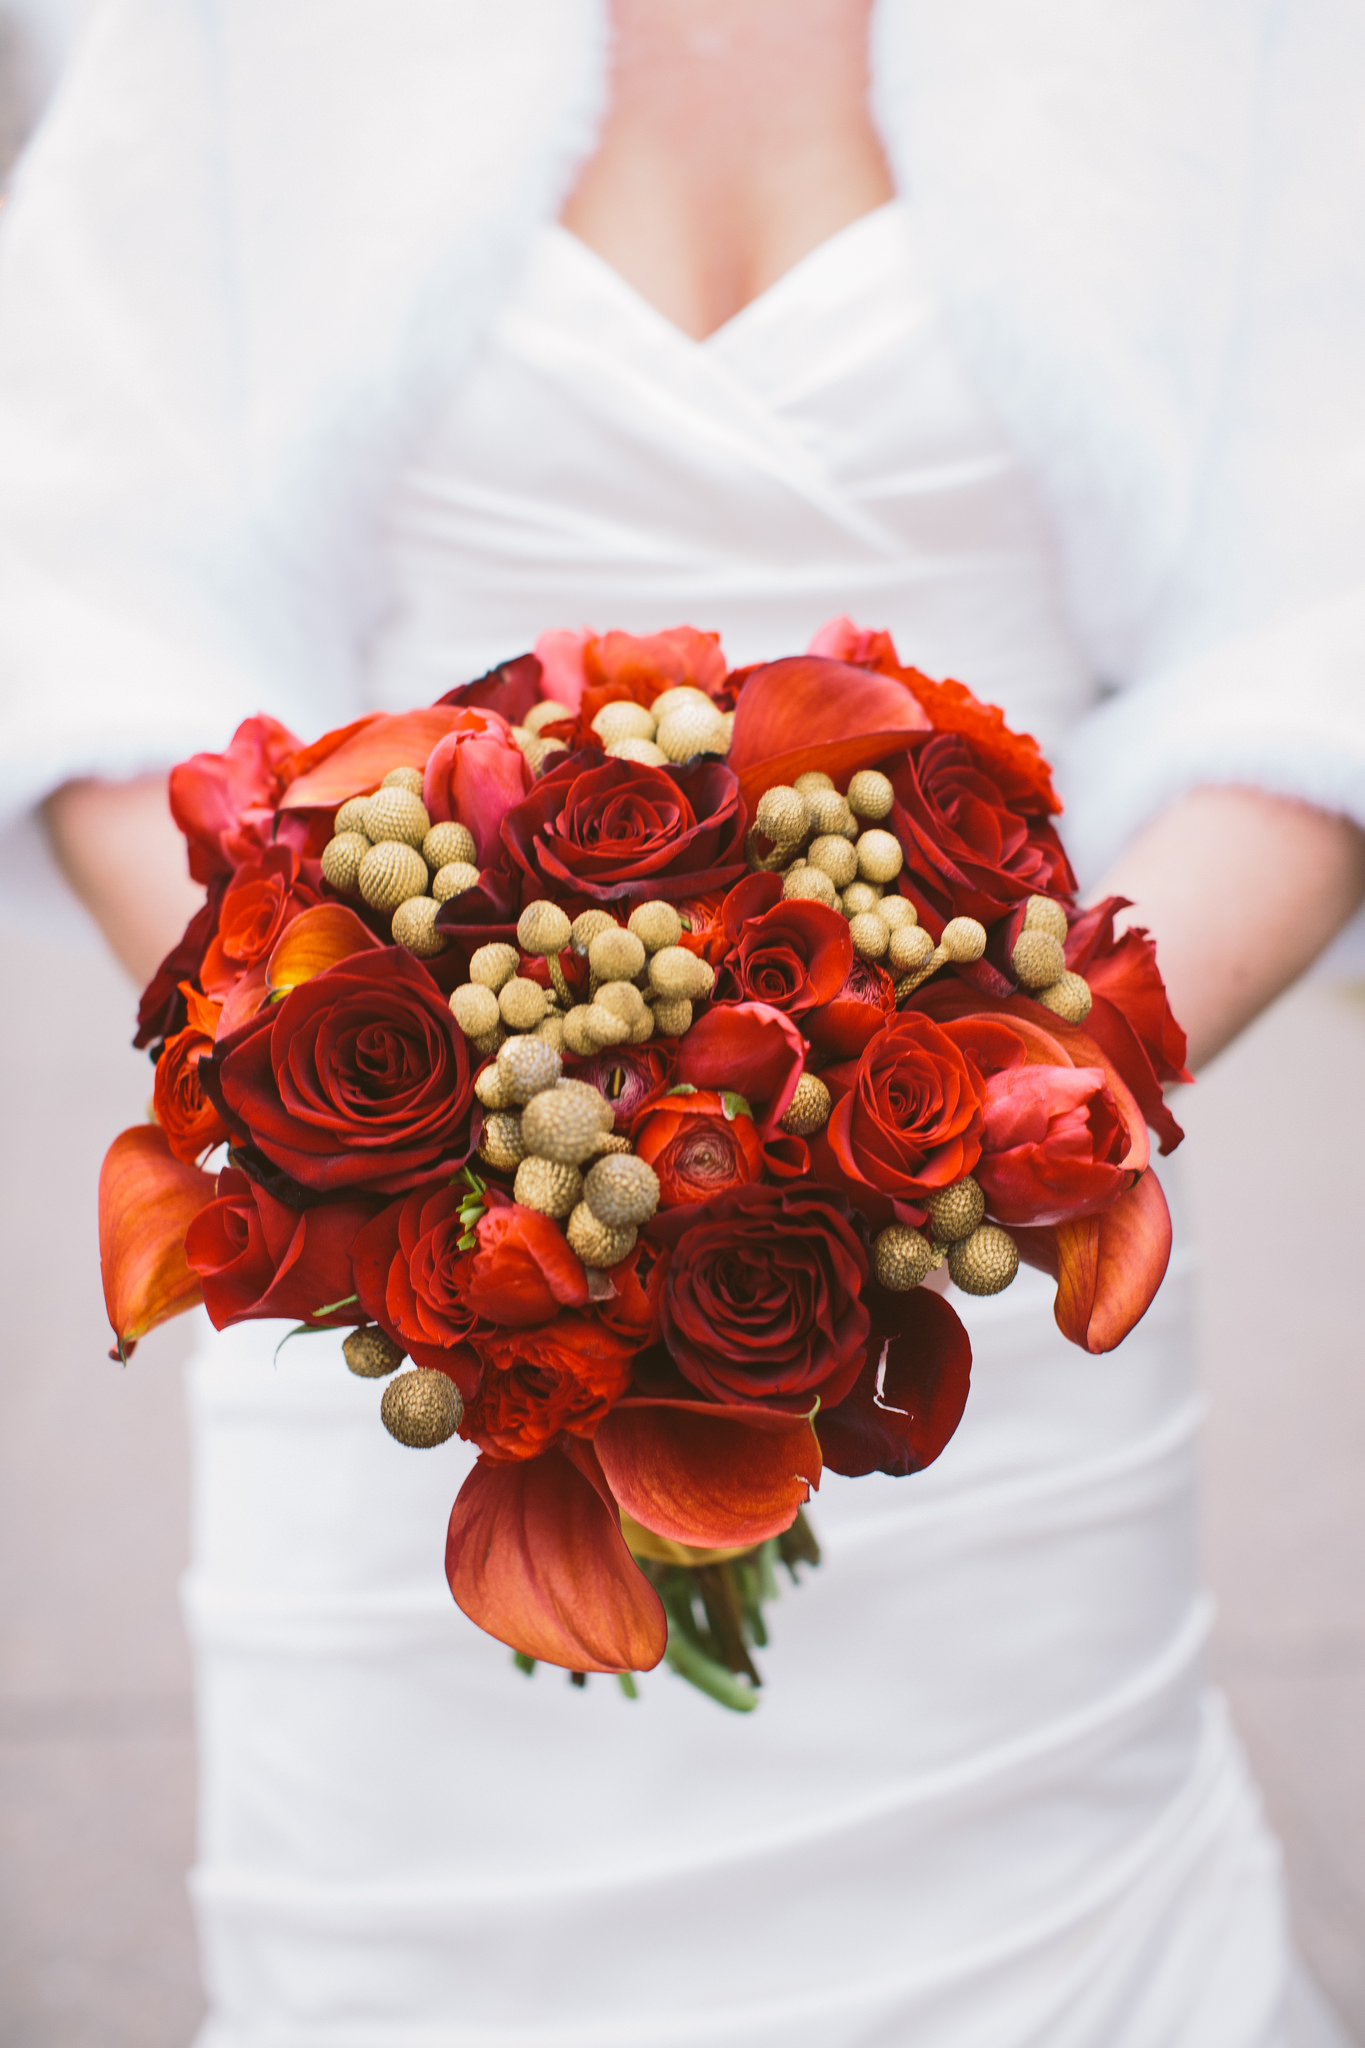 FLoral-Design-Bouquets-DC-Wedding-Planner-Valentines-Day-Weddings-Flowers